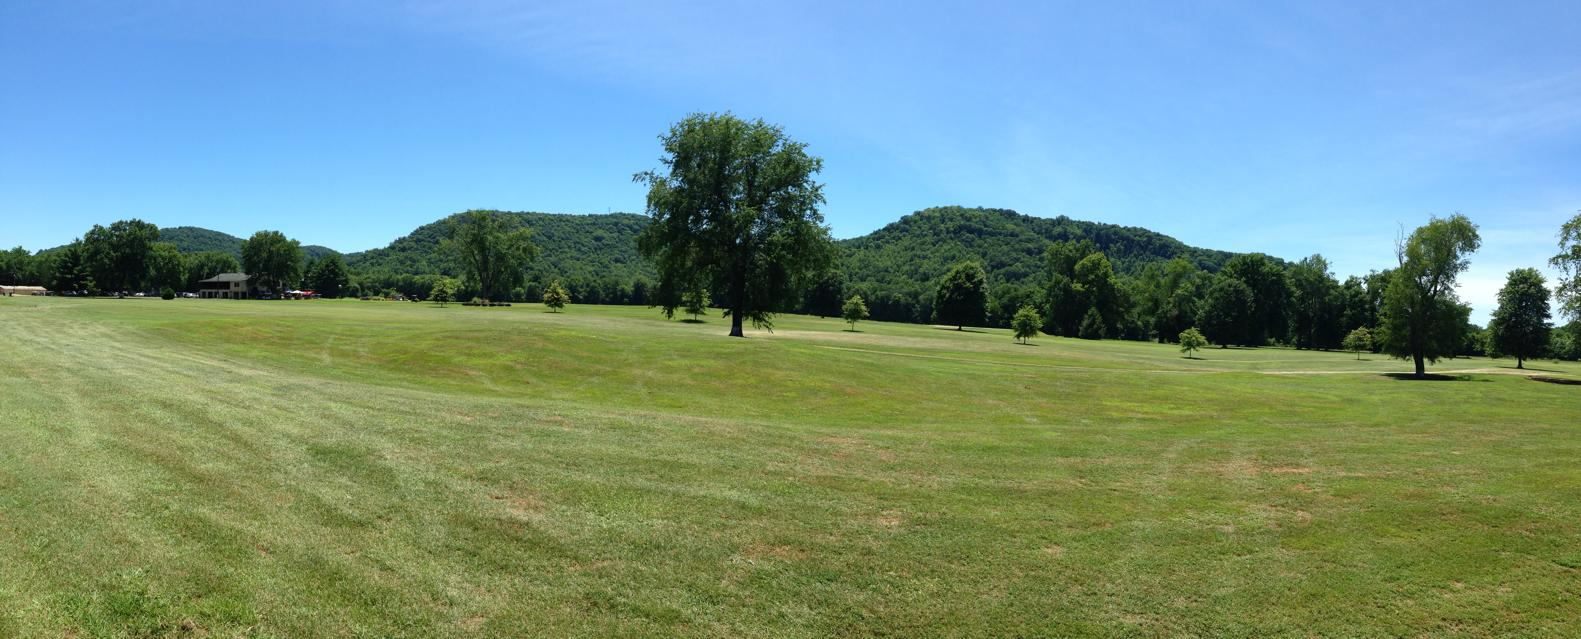 Overview of golf course named Estill County Golf Club